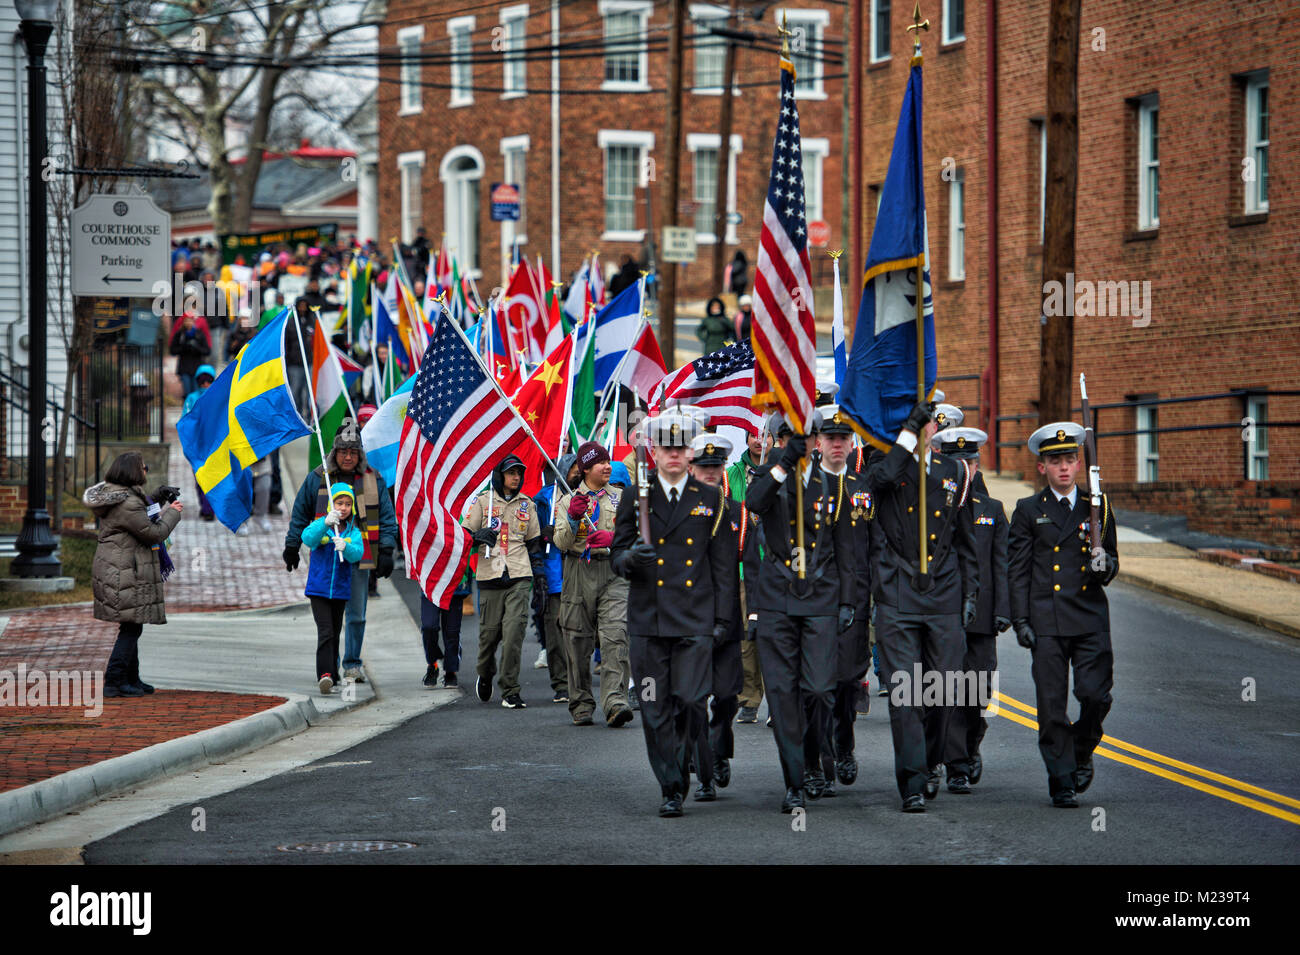 UNITED STATES - 01152018: Citizens march from Loudoun County Court House in downtown Leesburg to Douglass Community - Stock Image